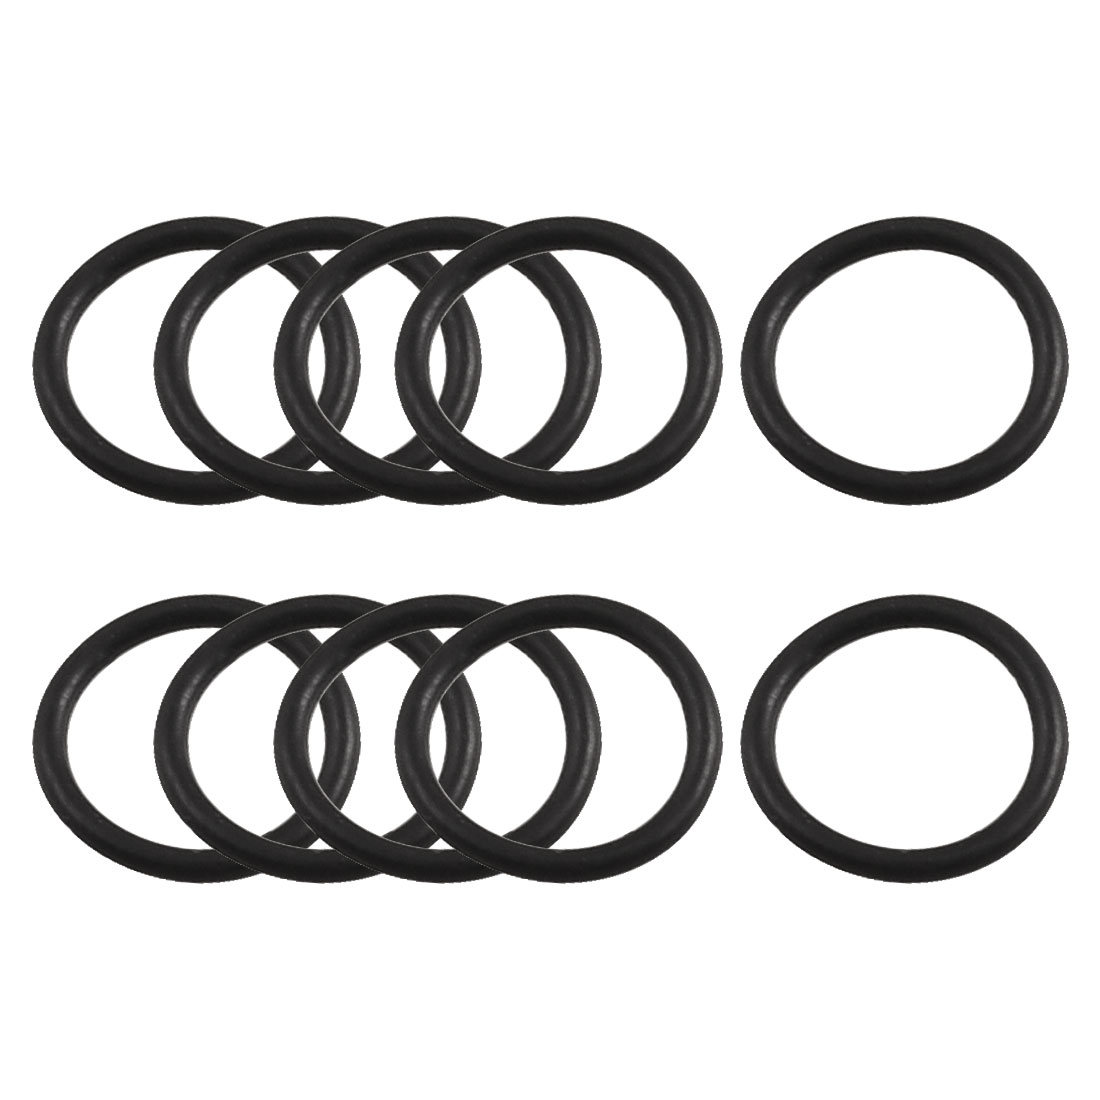 10 Pcs Black Rubber Oil Seal O Ring Gasket Washer 14mm x 11mm x 1.5mm